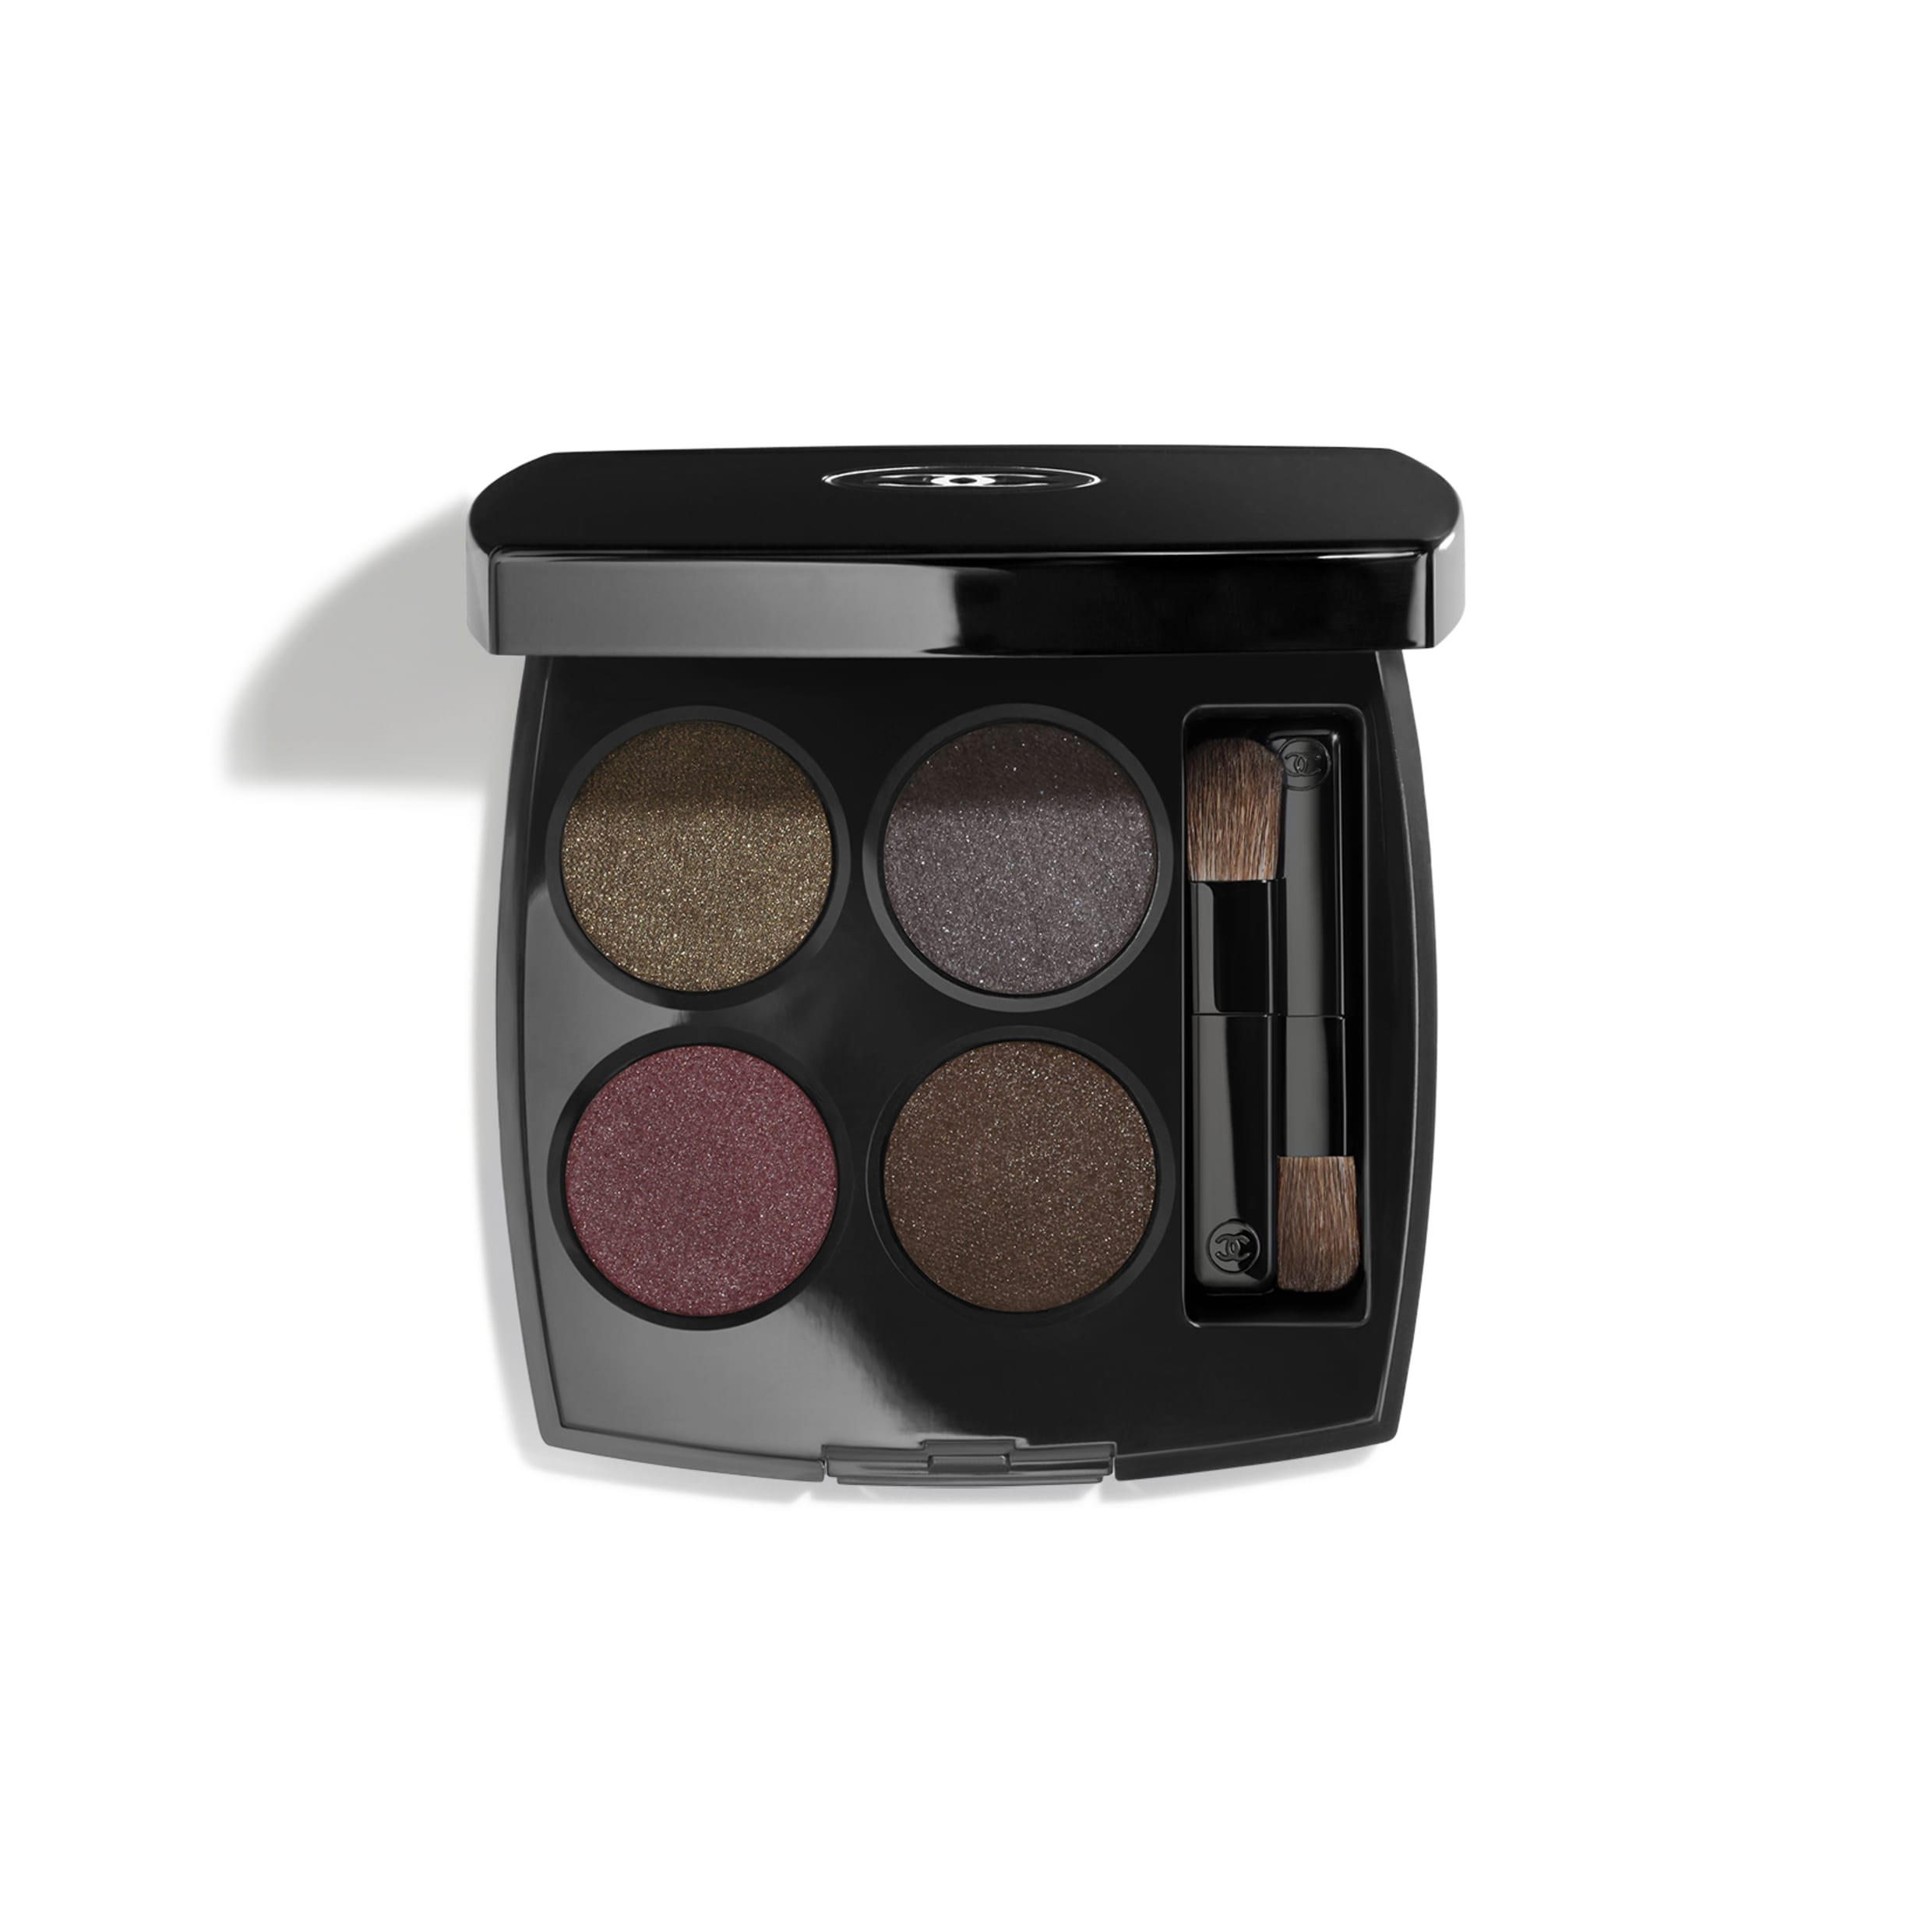 Chanel Les 4 Ombres Multi-Effect Quadra Eyeshadow Noir Supreme 332